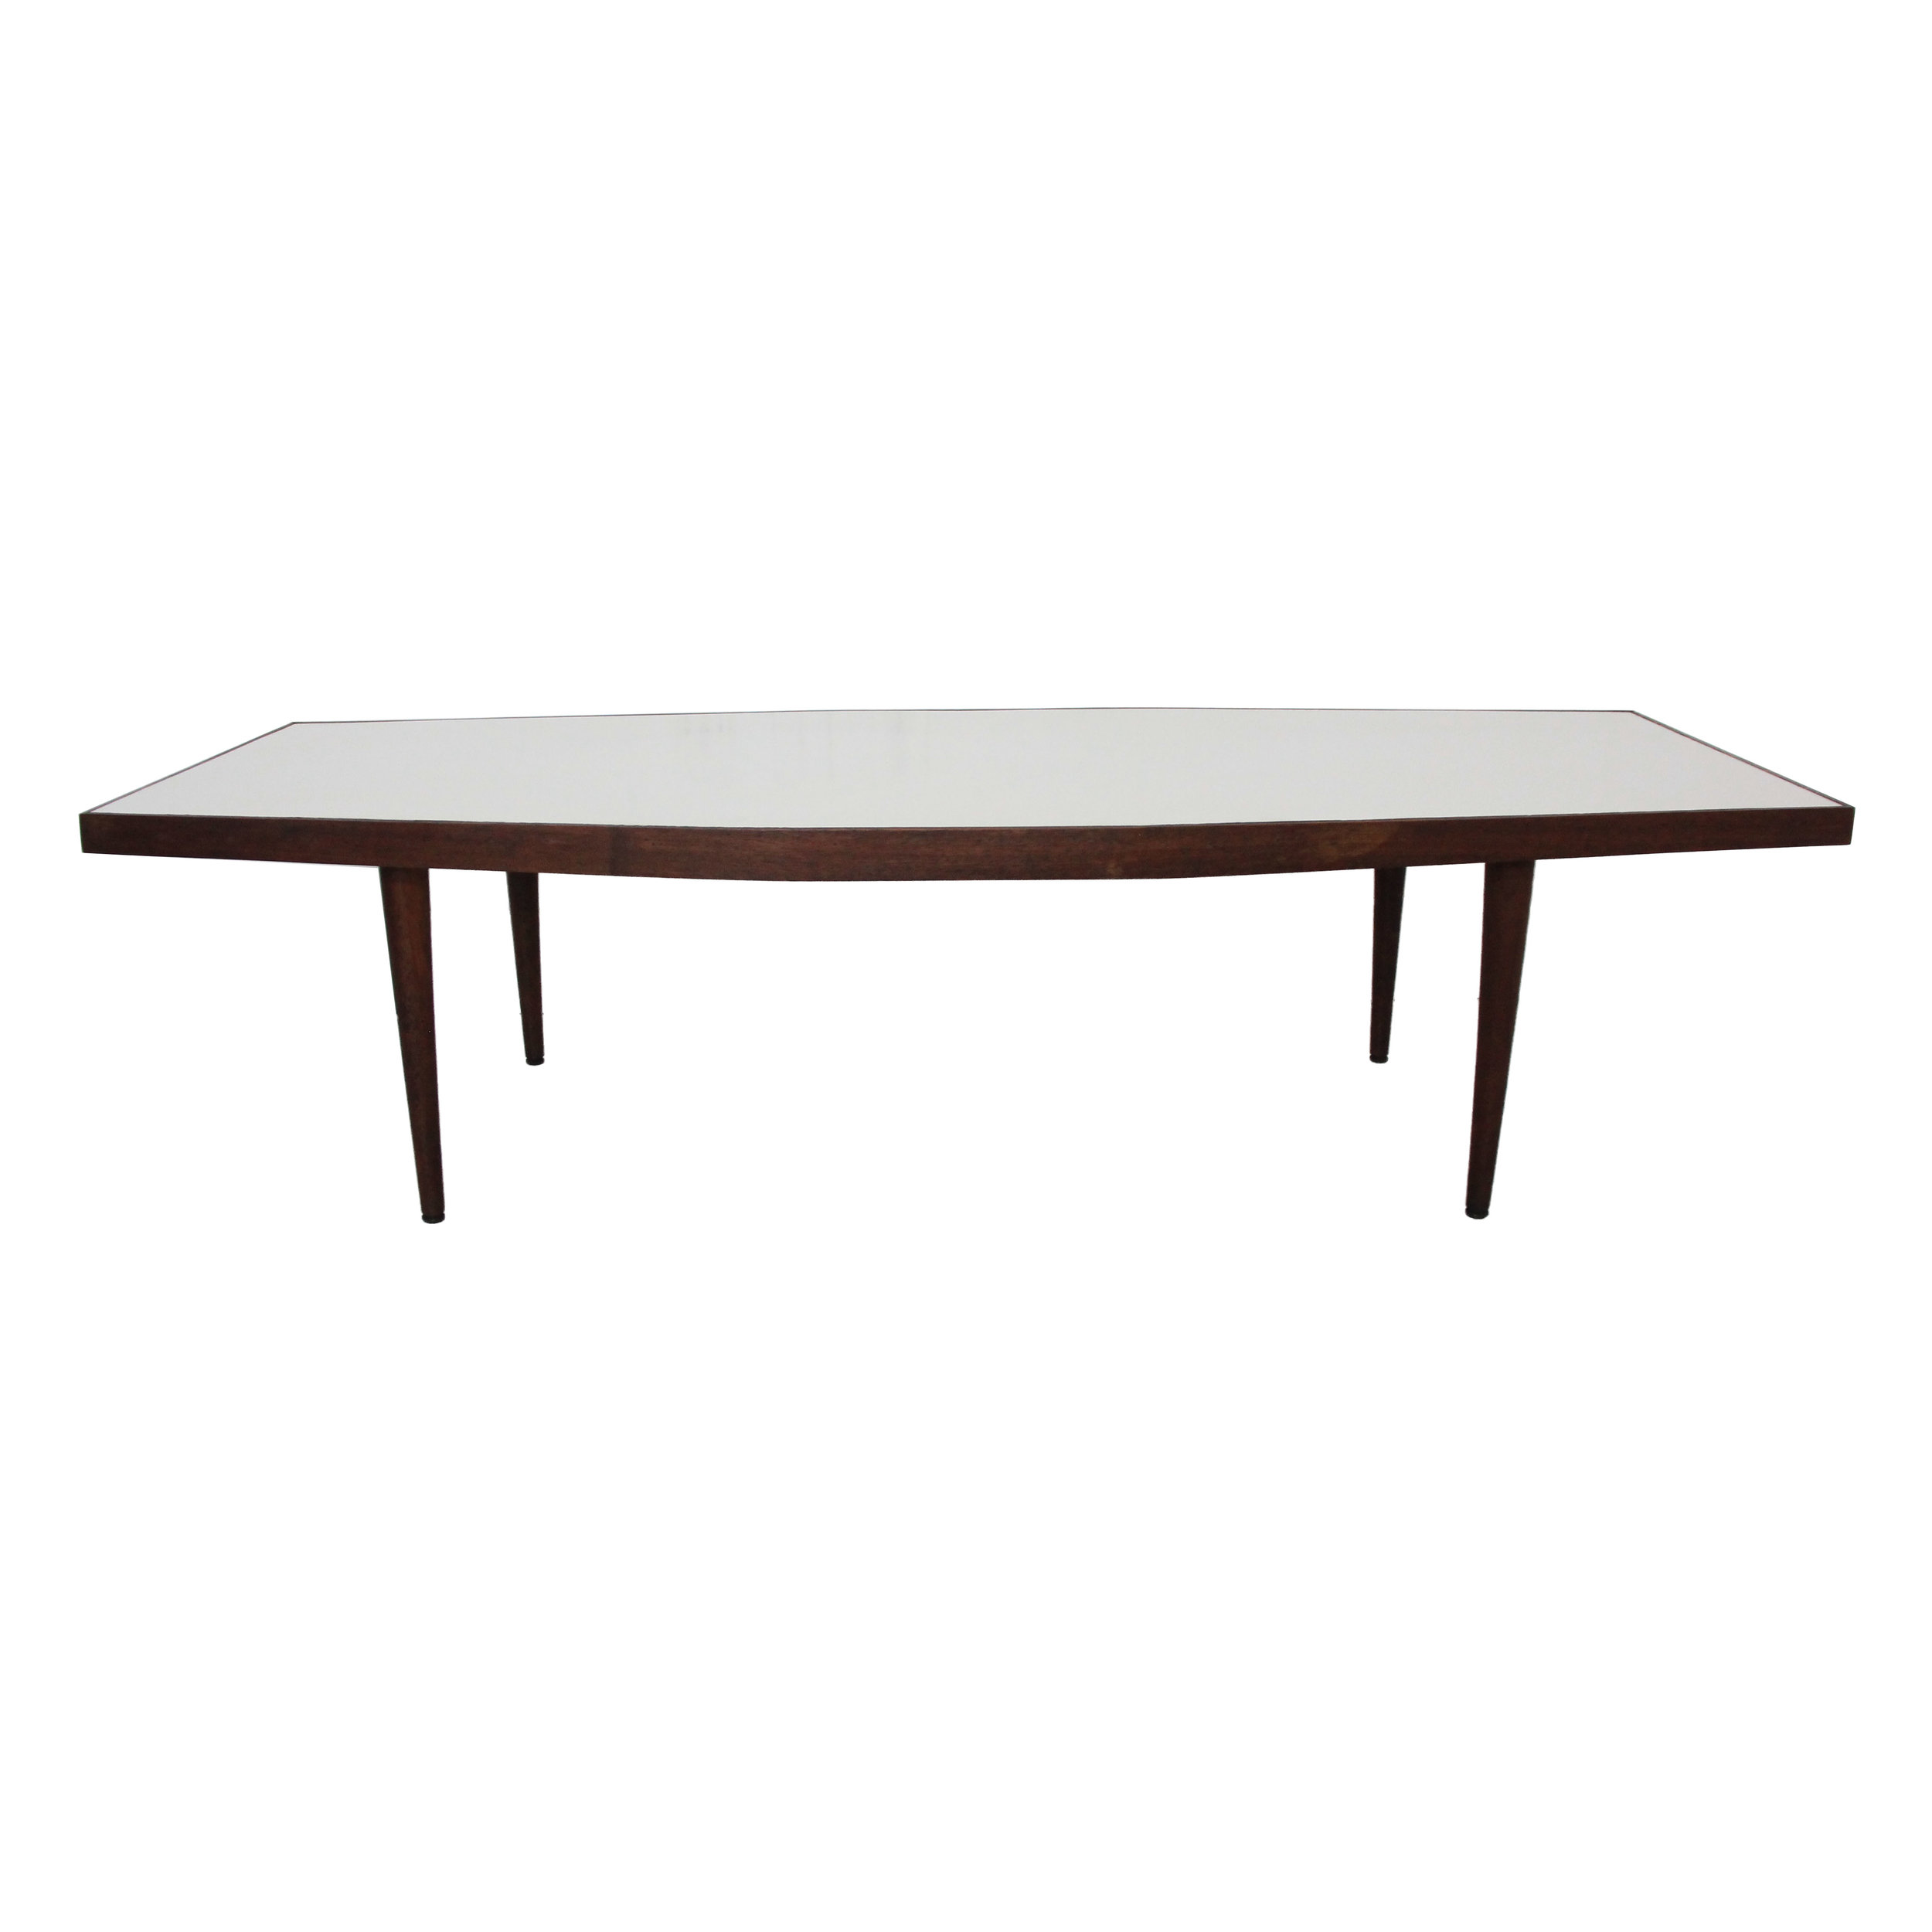 Vintage Mid Century Modern White Boomerang Coffee Table